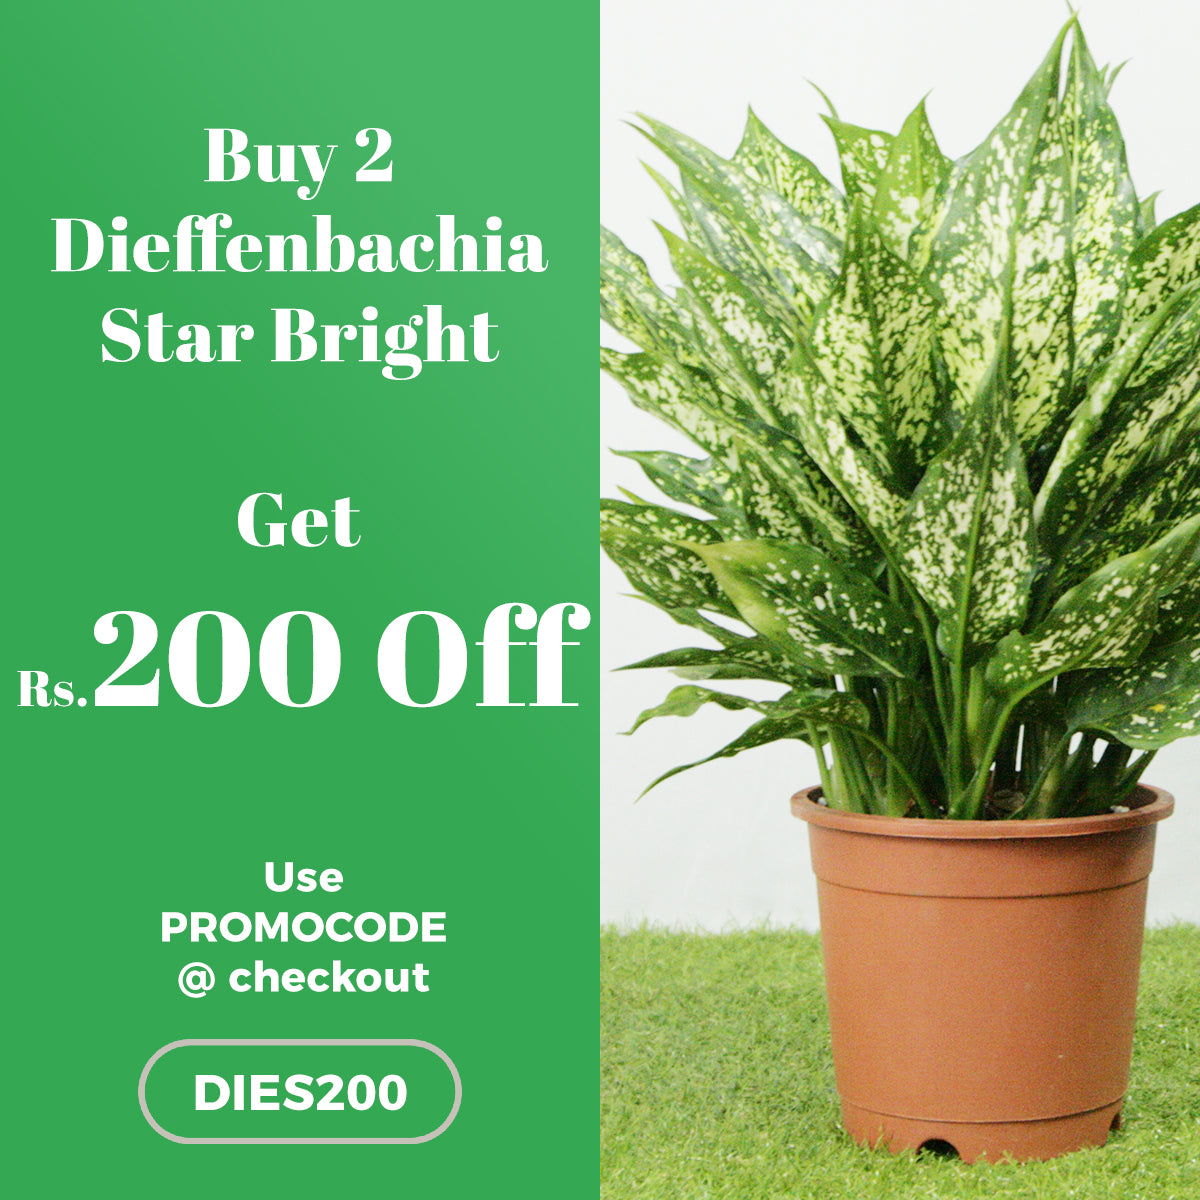 Buy 2 Dieffenbachia Star Bright Plant and get Rs.200 OFF